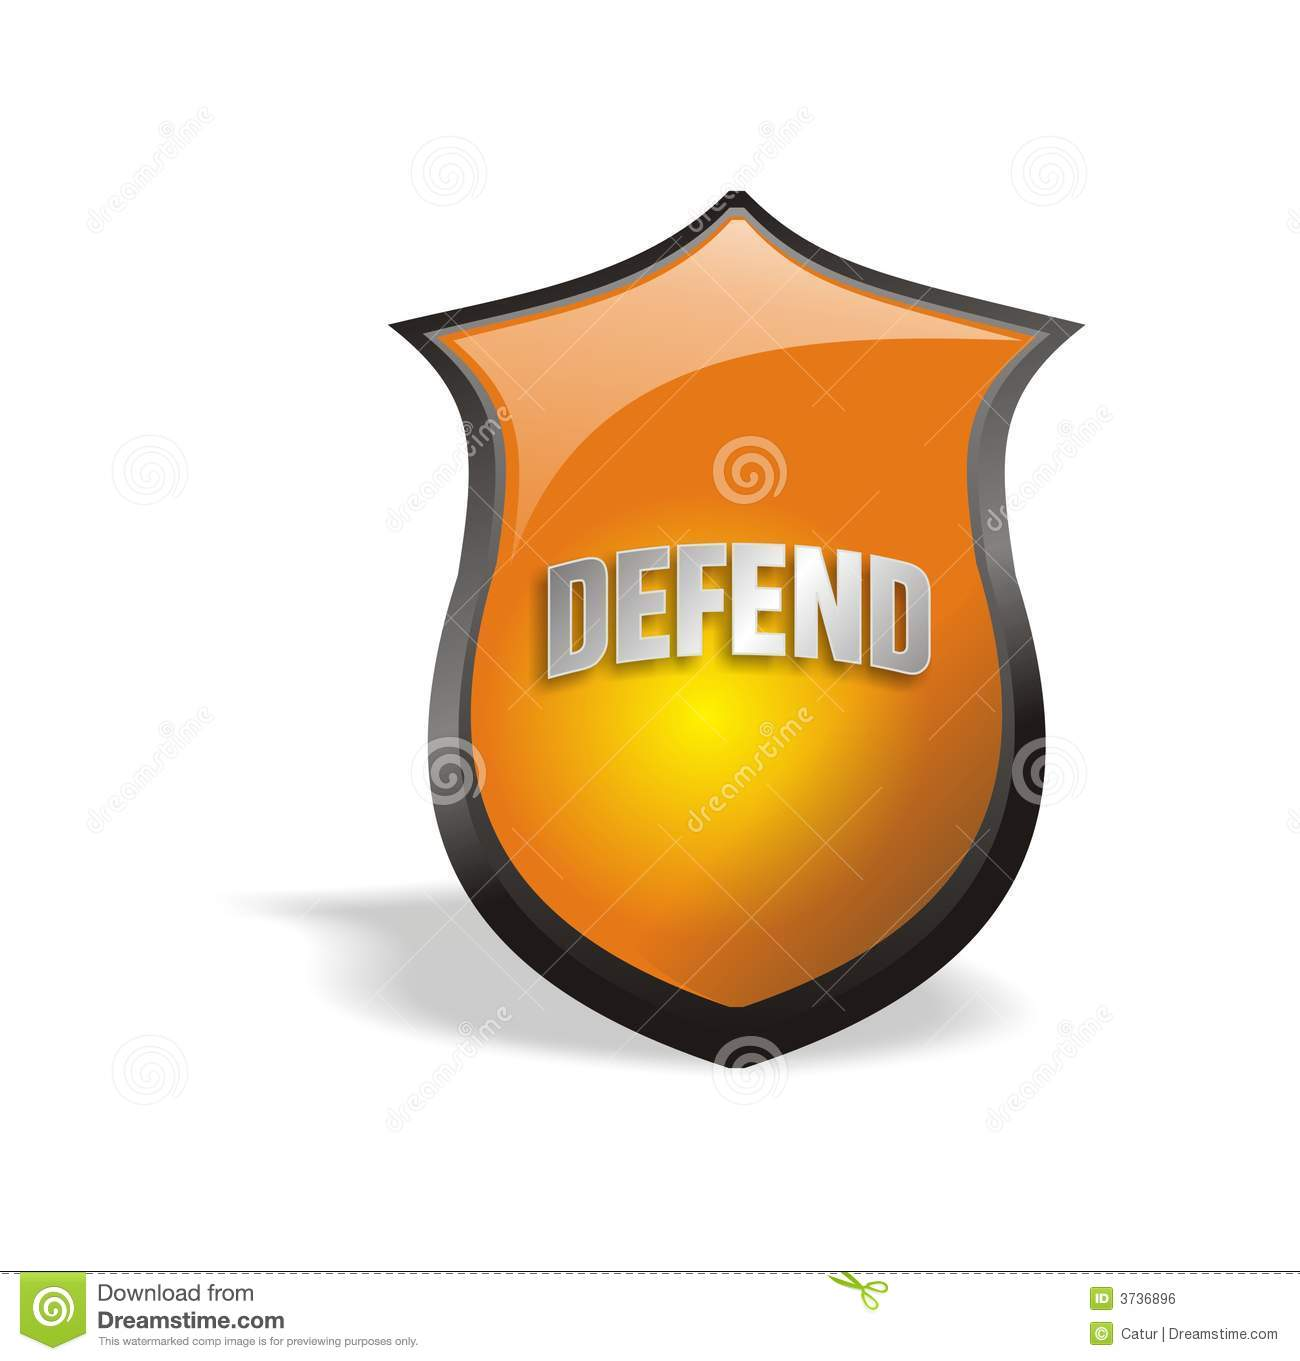 Cool 2.0 Shield Defend Royalty Free Stock Image.